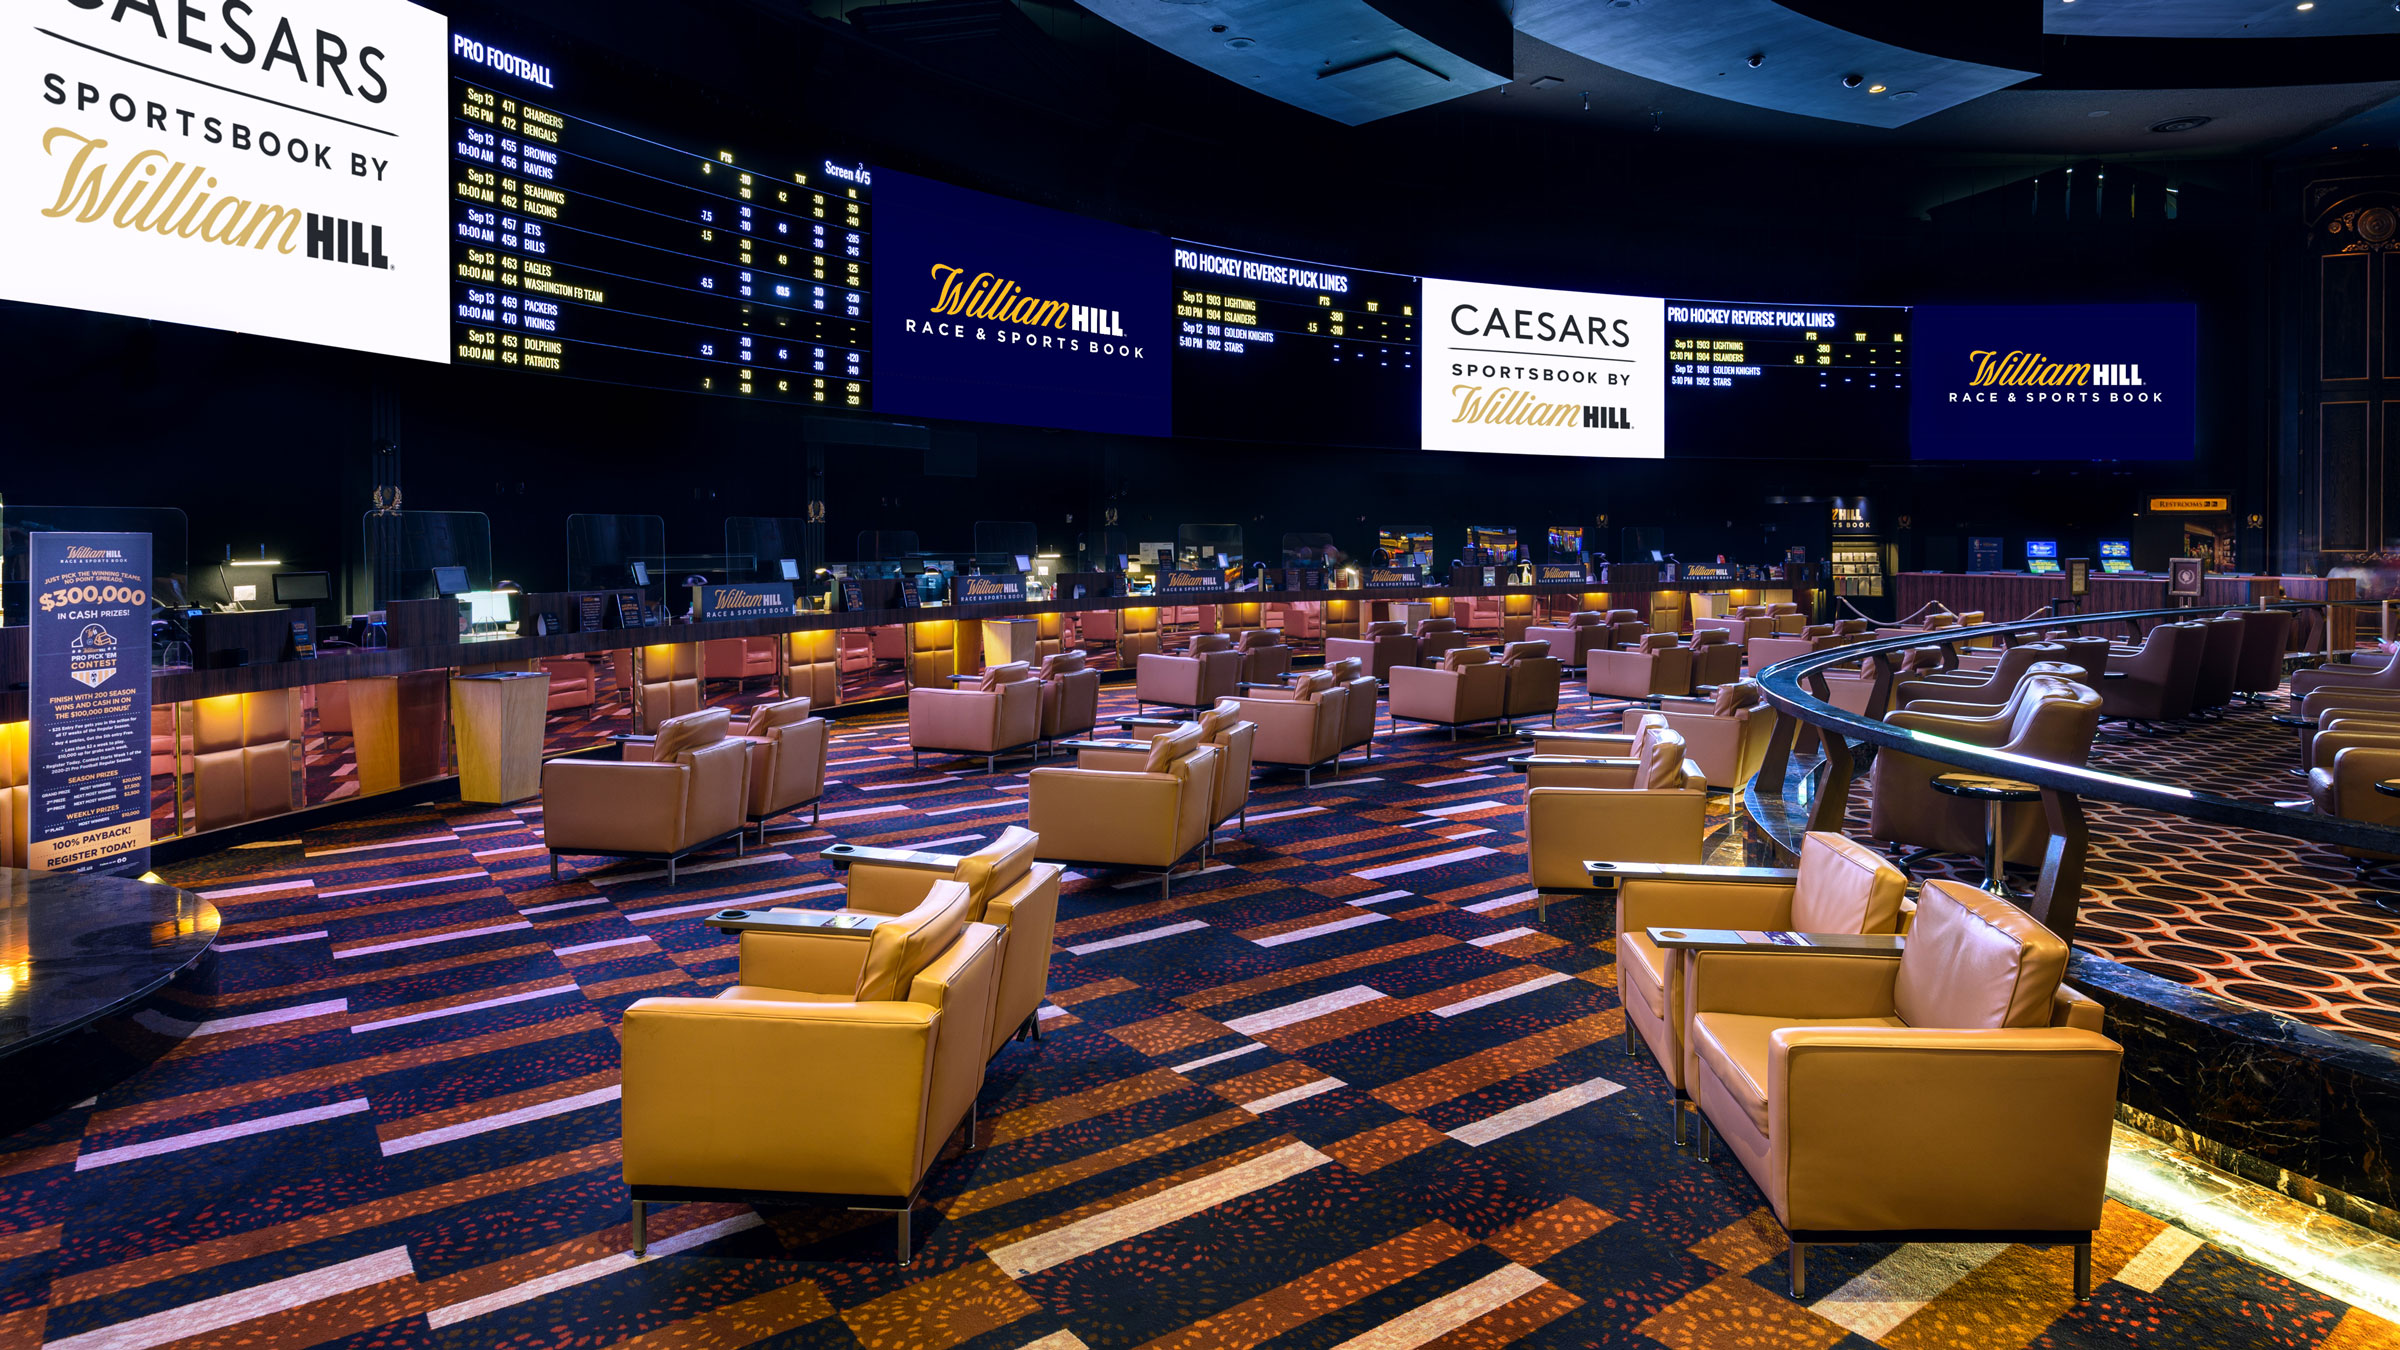 New Caesars Sportsbook Openings and App Launch Announced